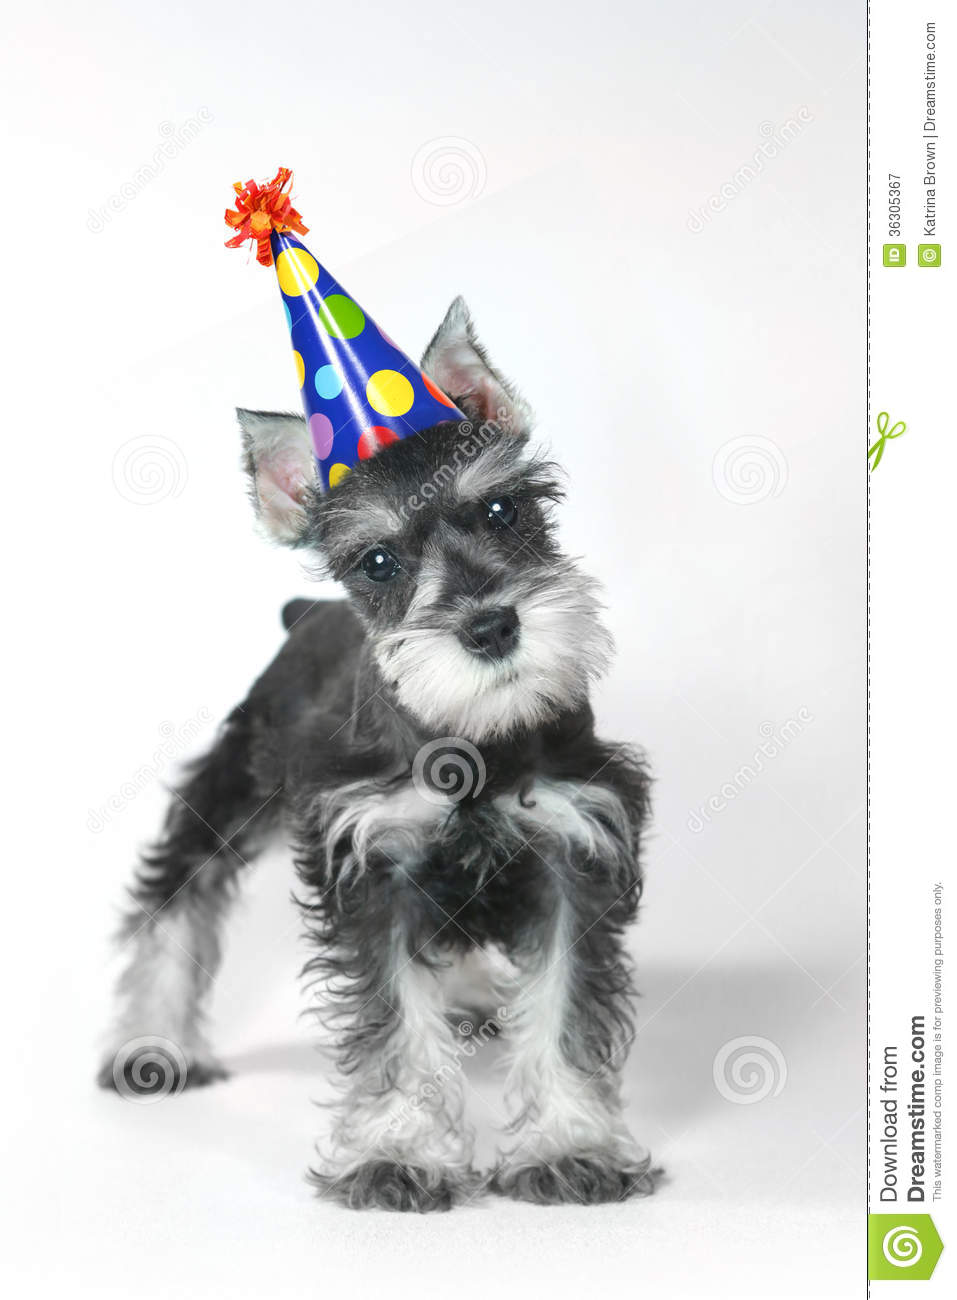 Birthday Hat Wearing Miniature Schnauzer Puppy Dog on White